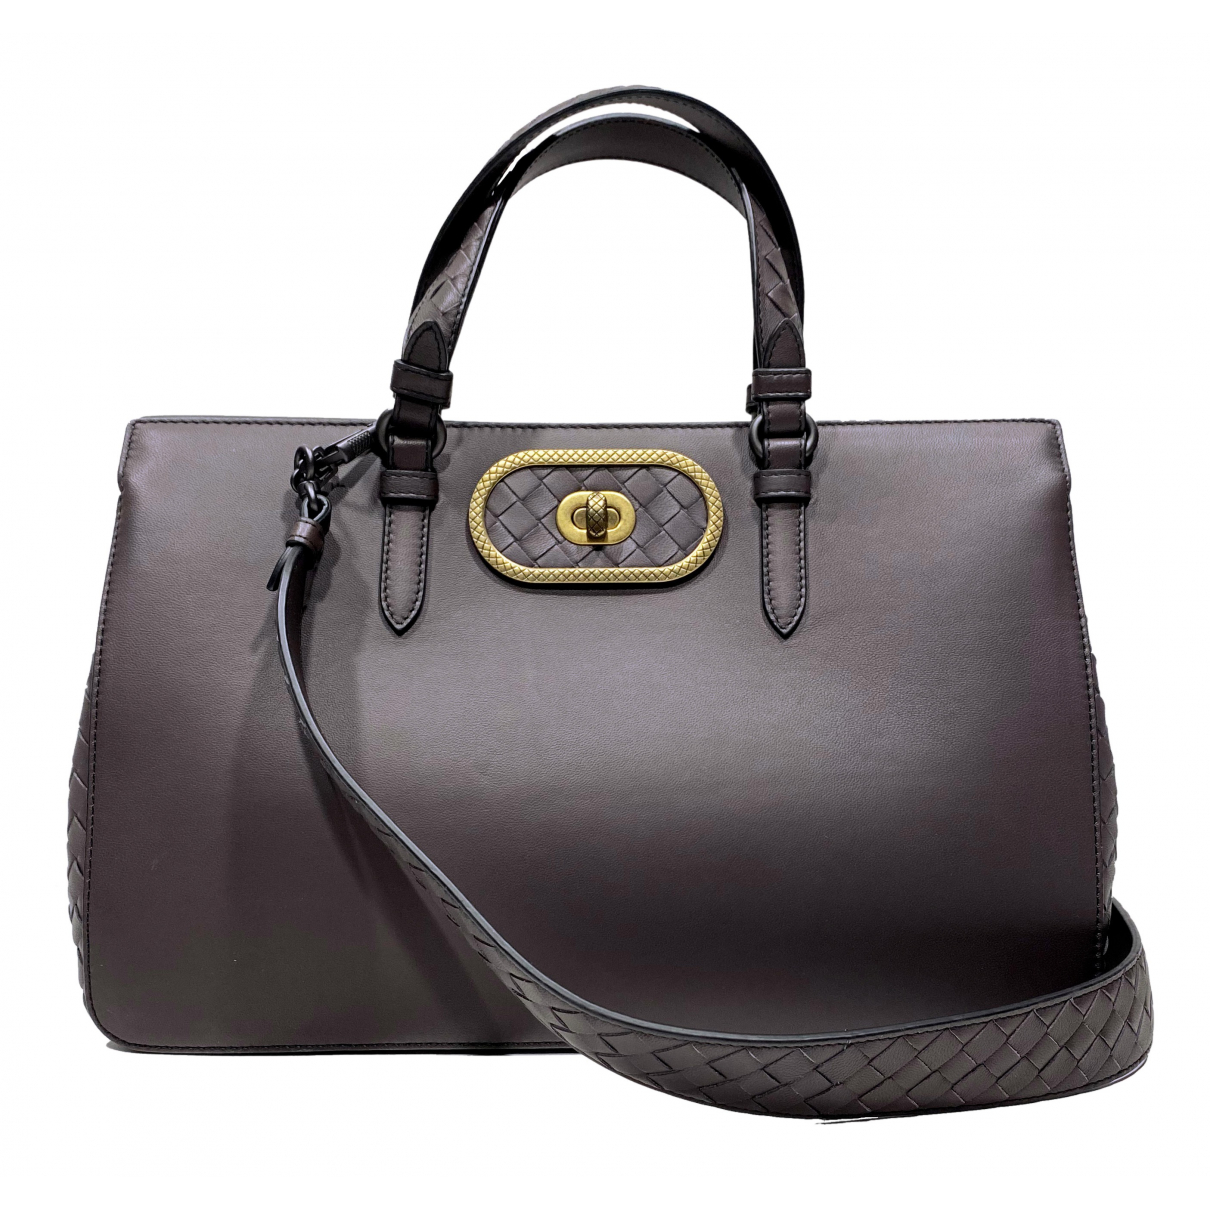 Bottega Veneta N Grey Leather handbag for Women N